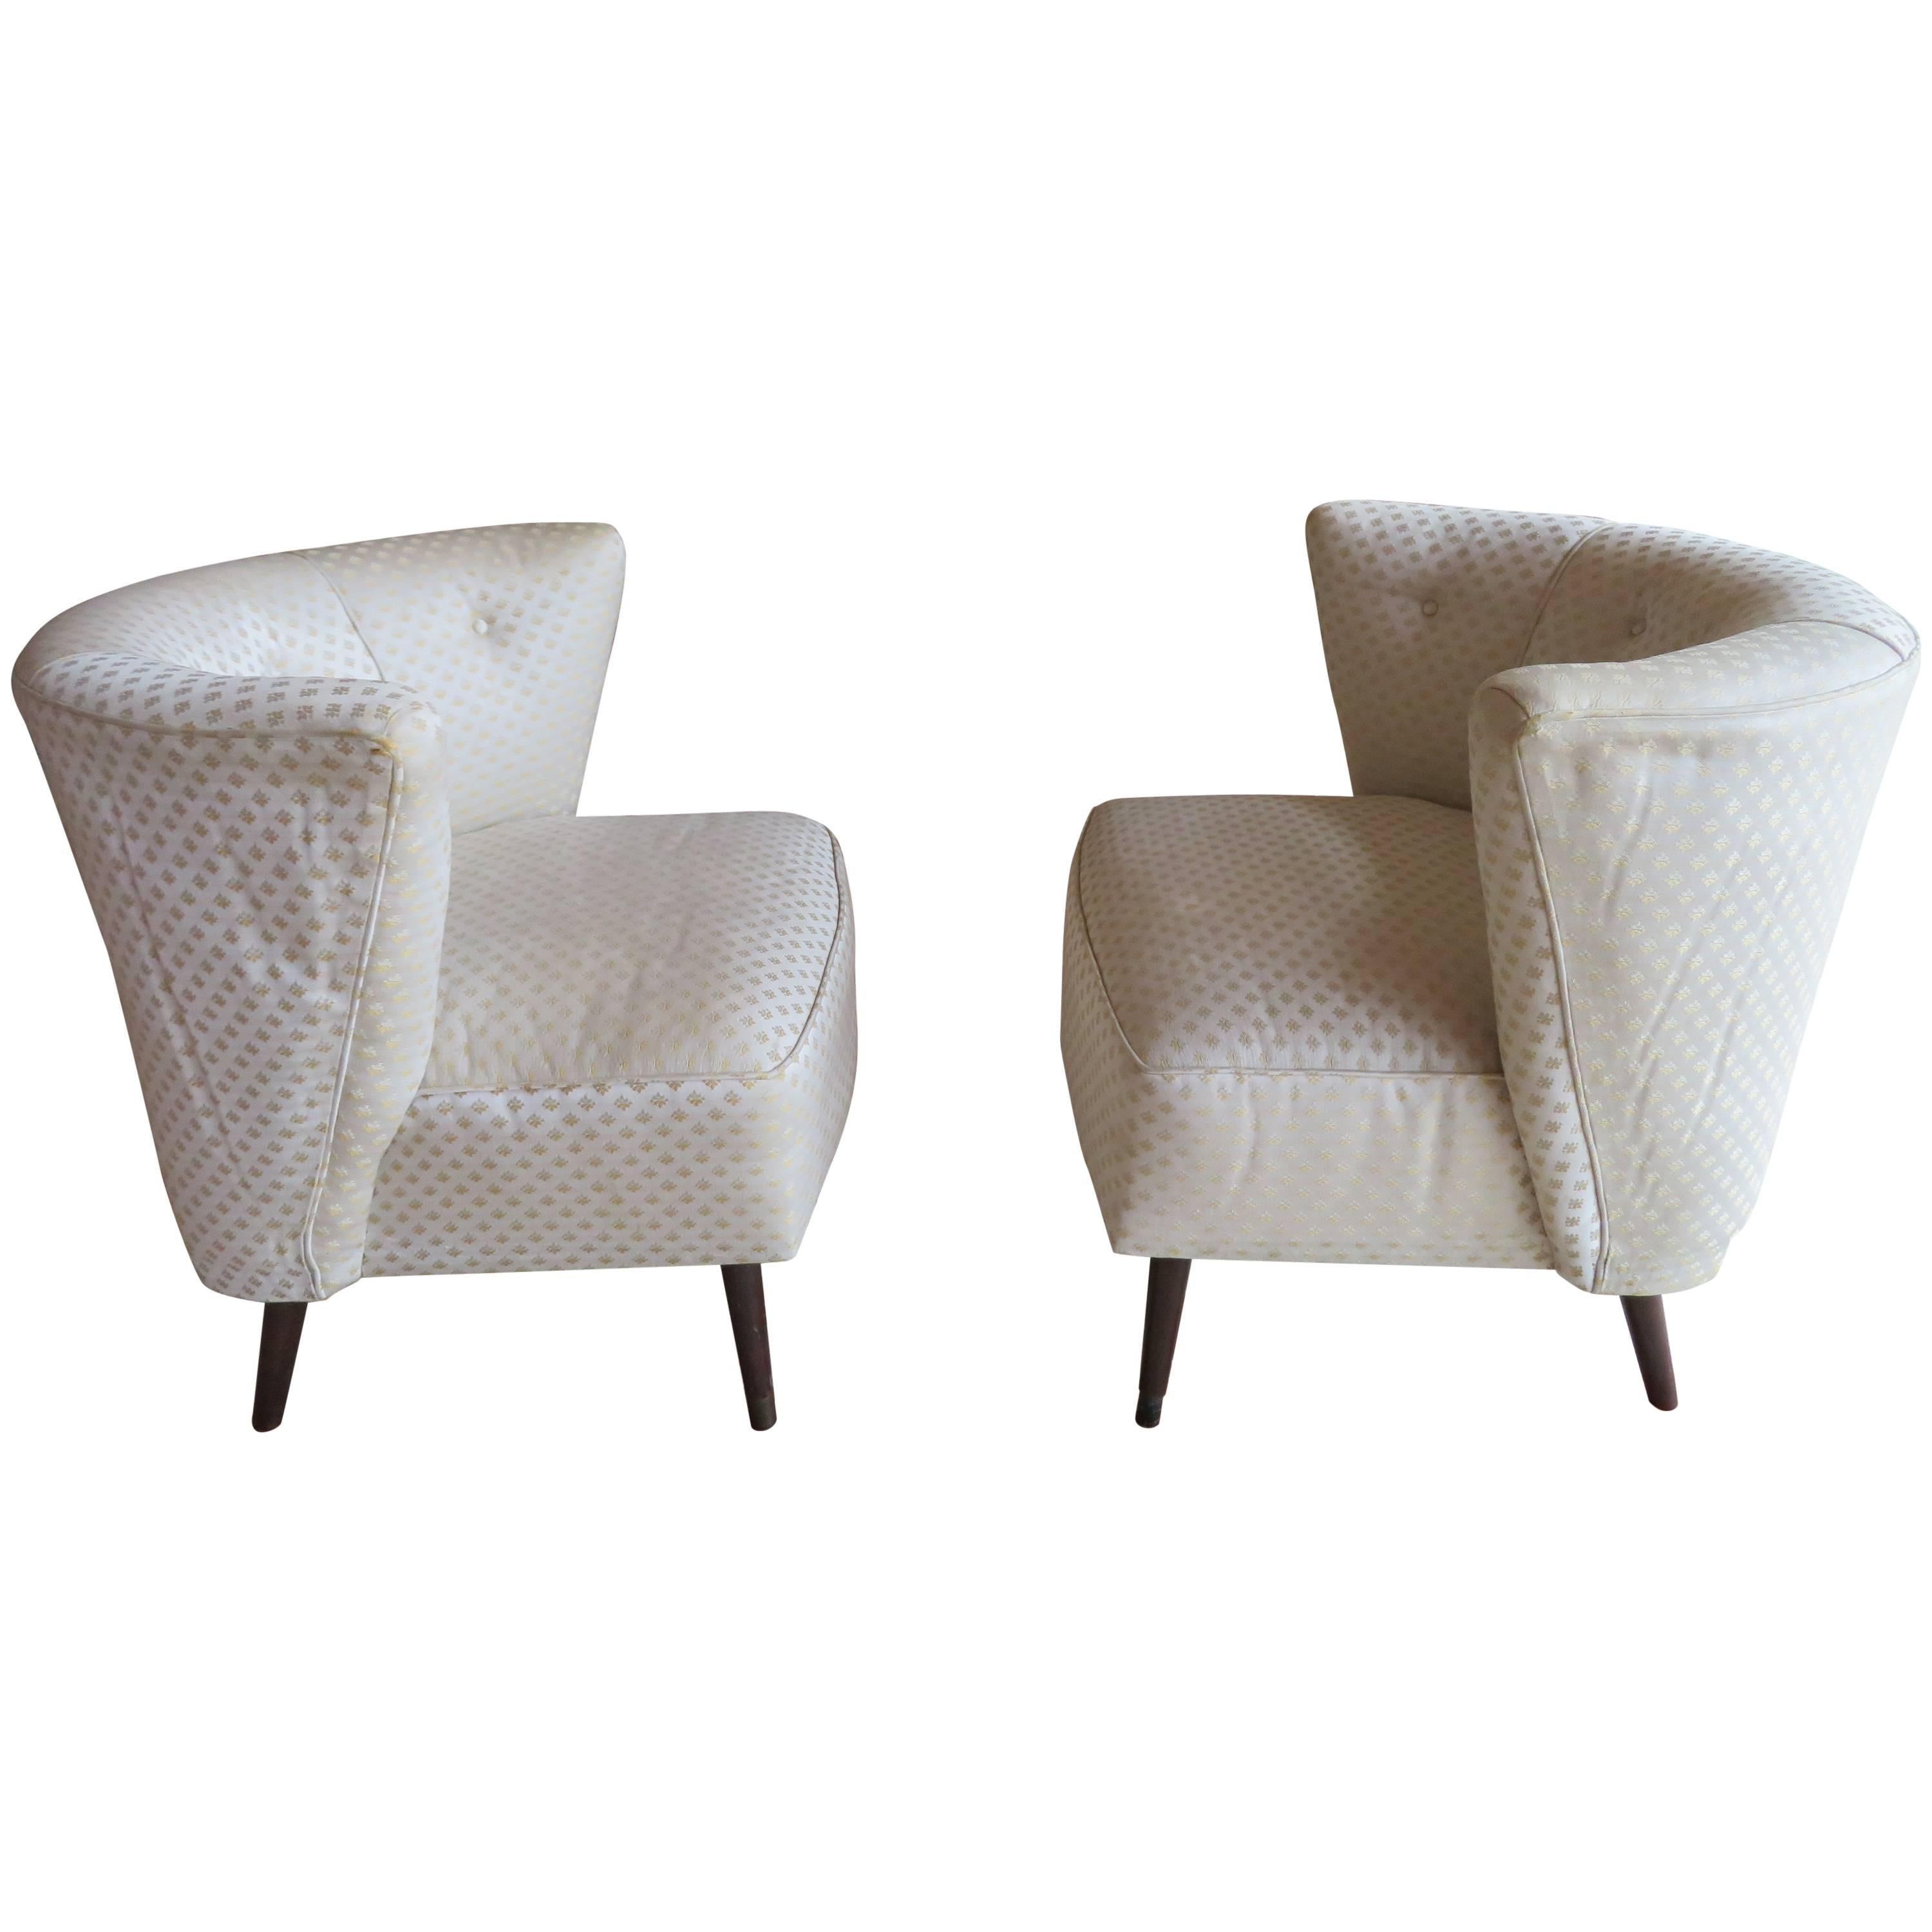 Sculptural Billy Haines Style Barrel Back Lounge Chairs Mid-Century Modern, Pair